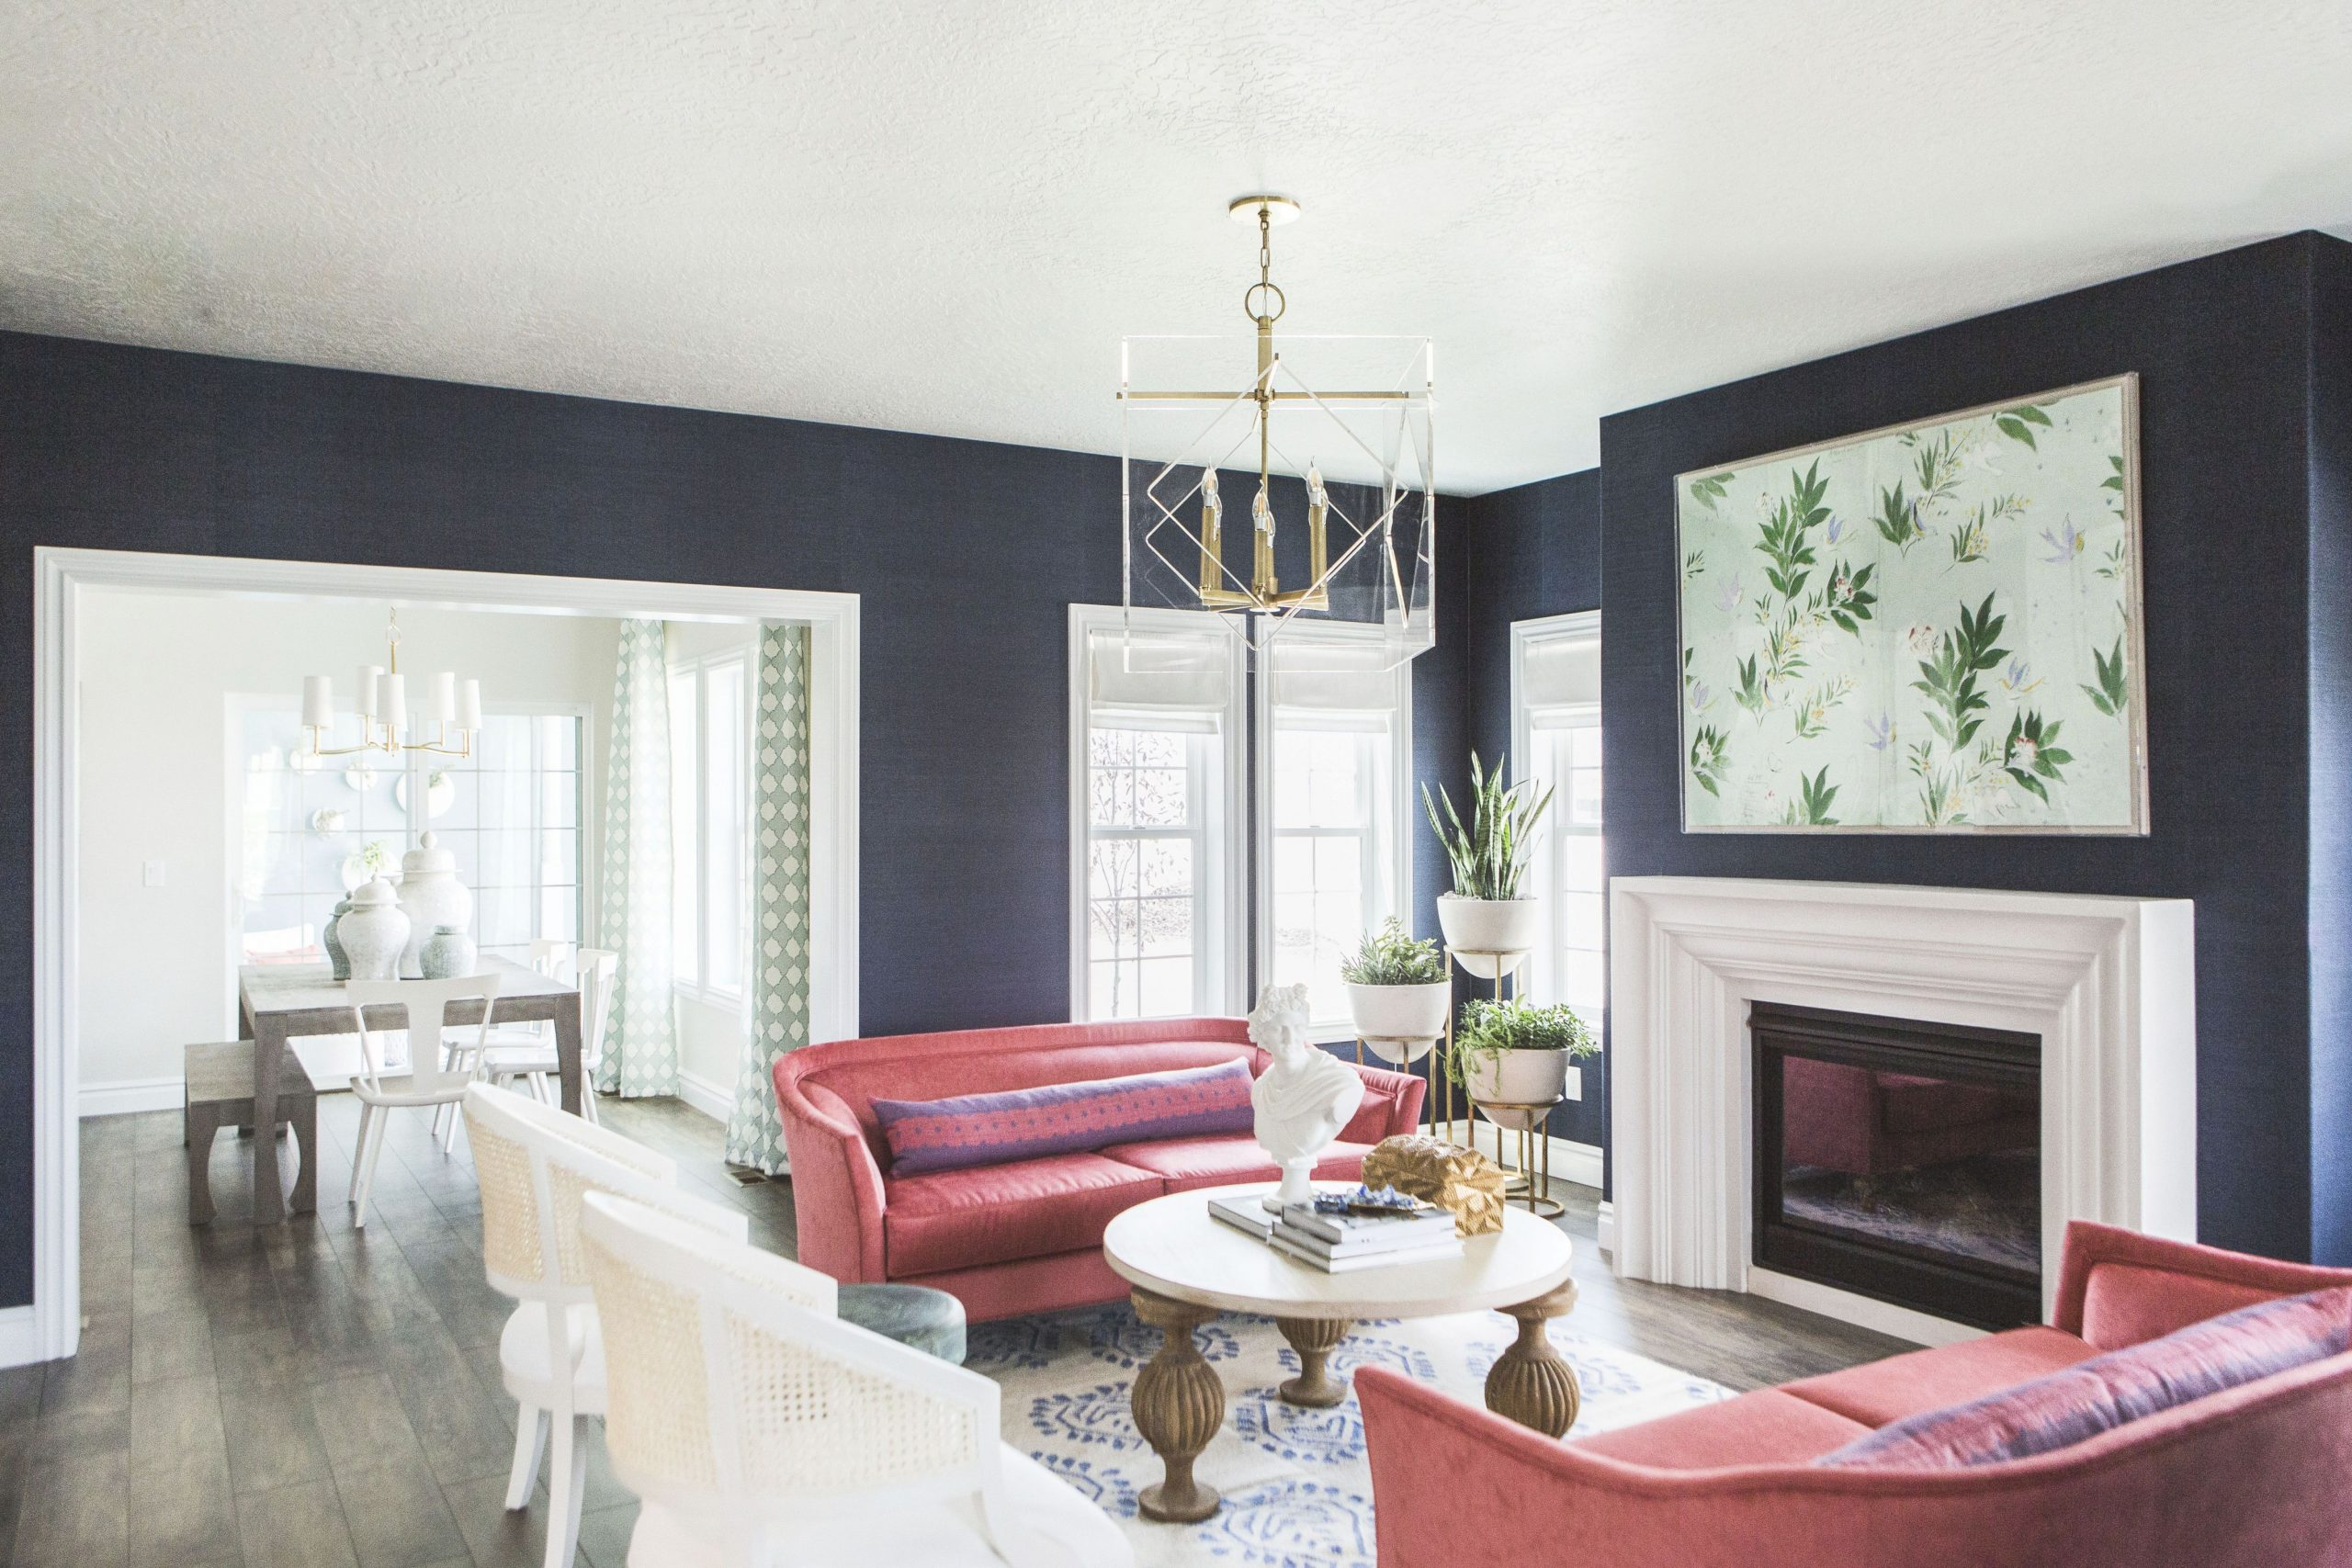 53 Best Living Room Ideas - Stylish Living Room Decorating in Lovely Home Decorating Ideas Small Living Room